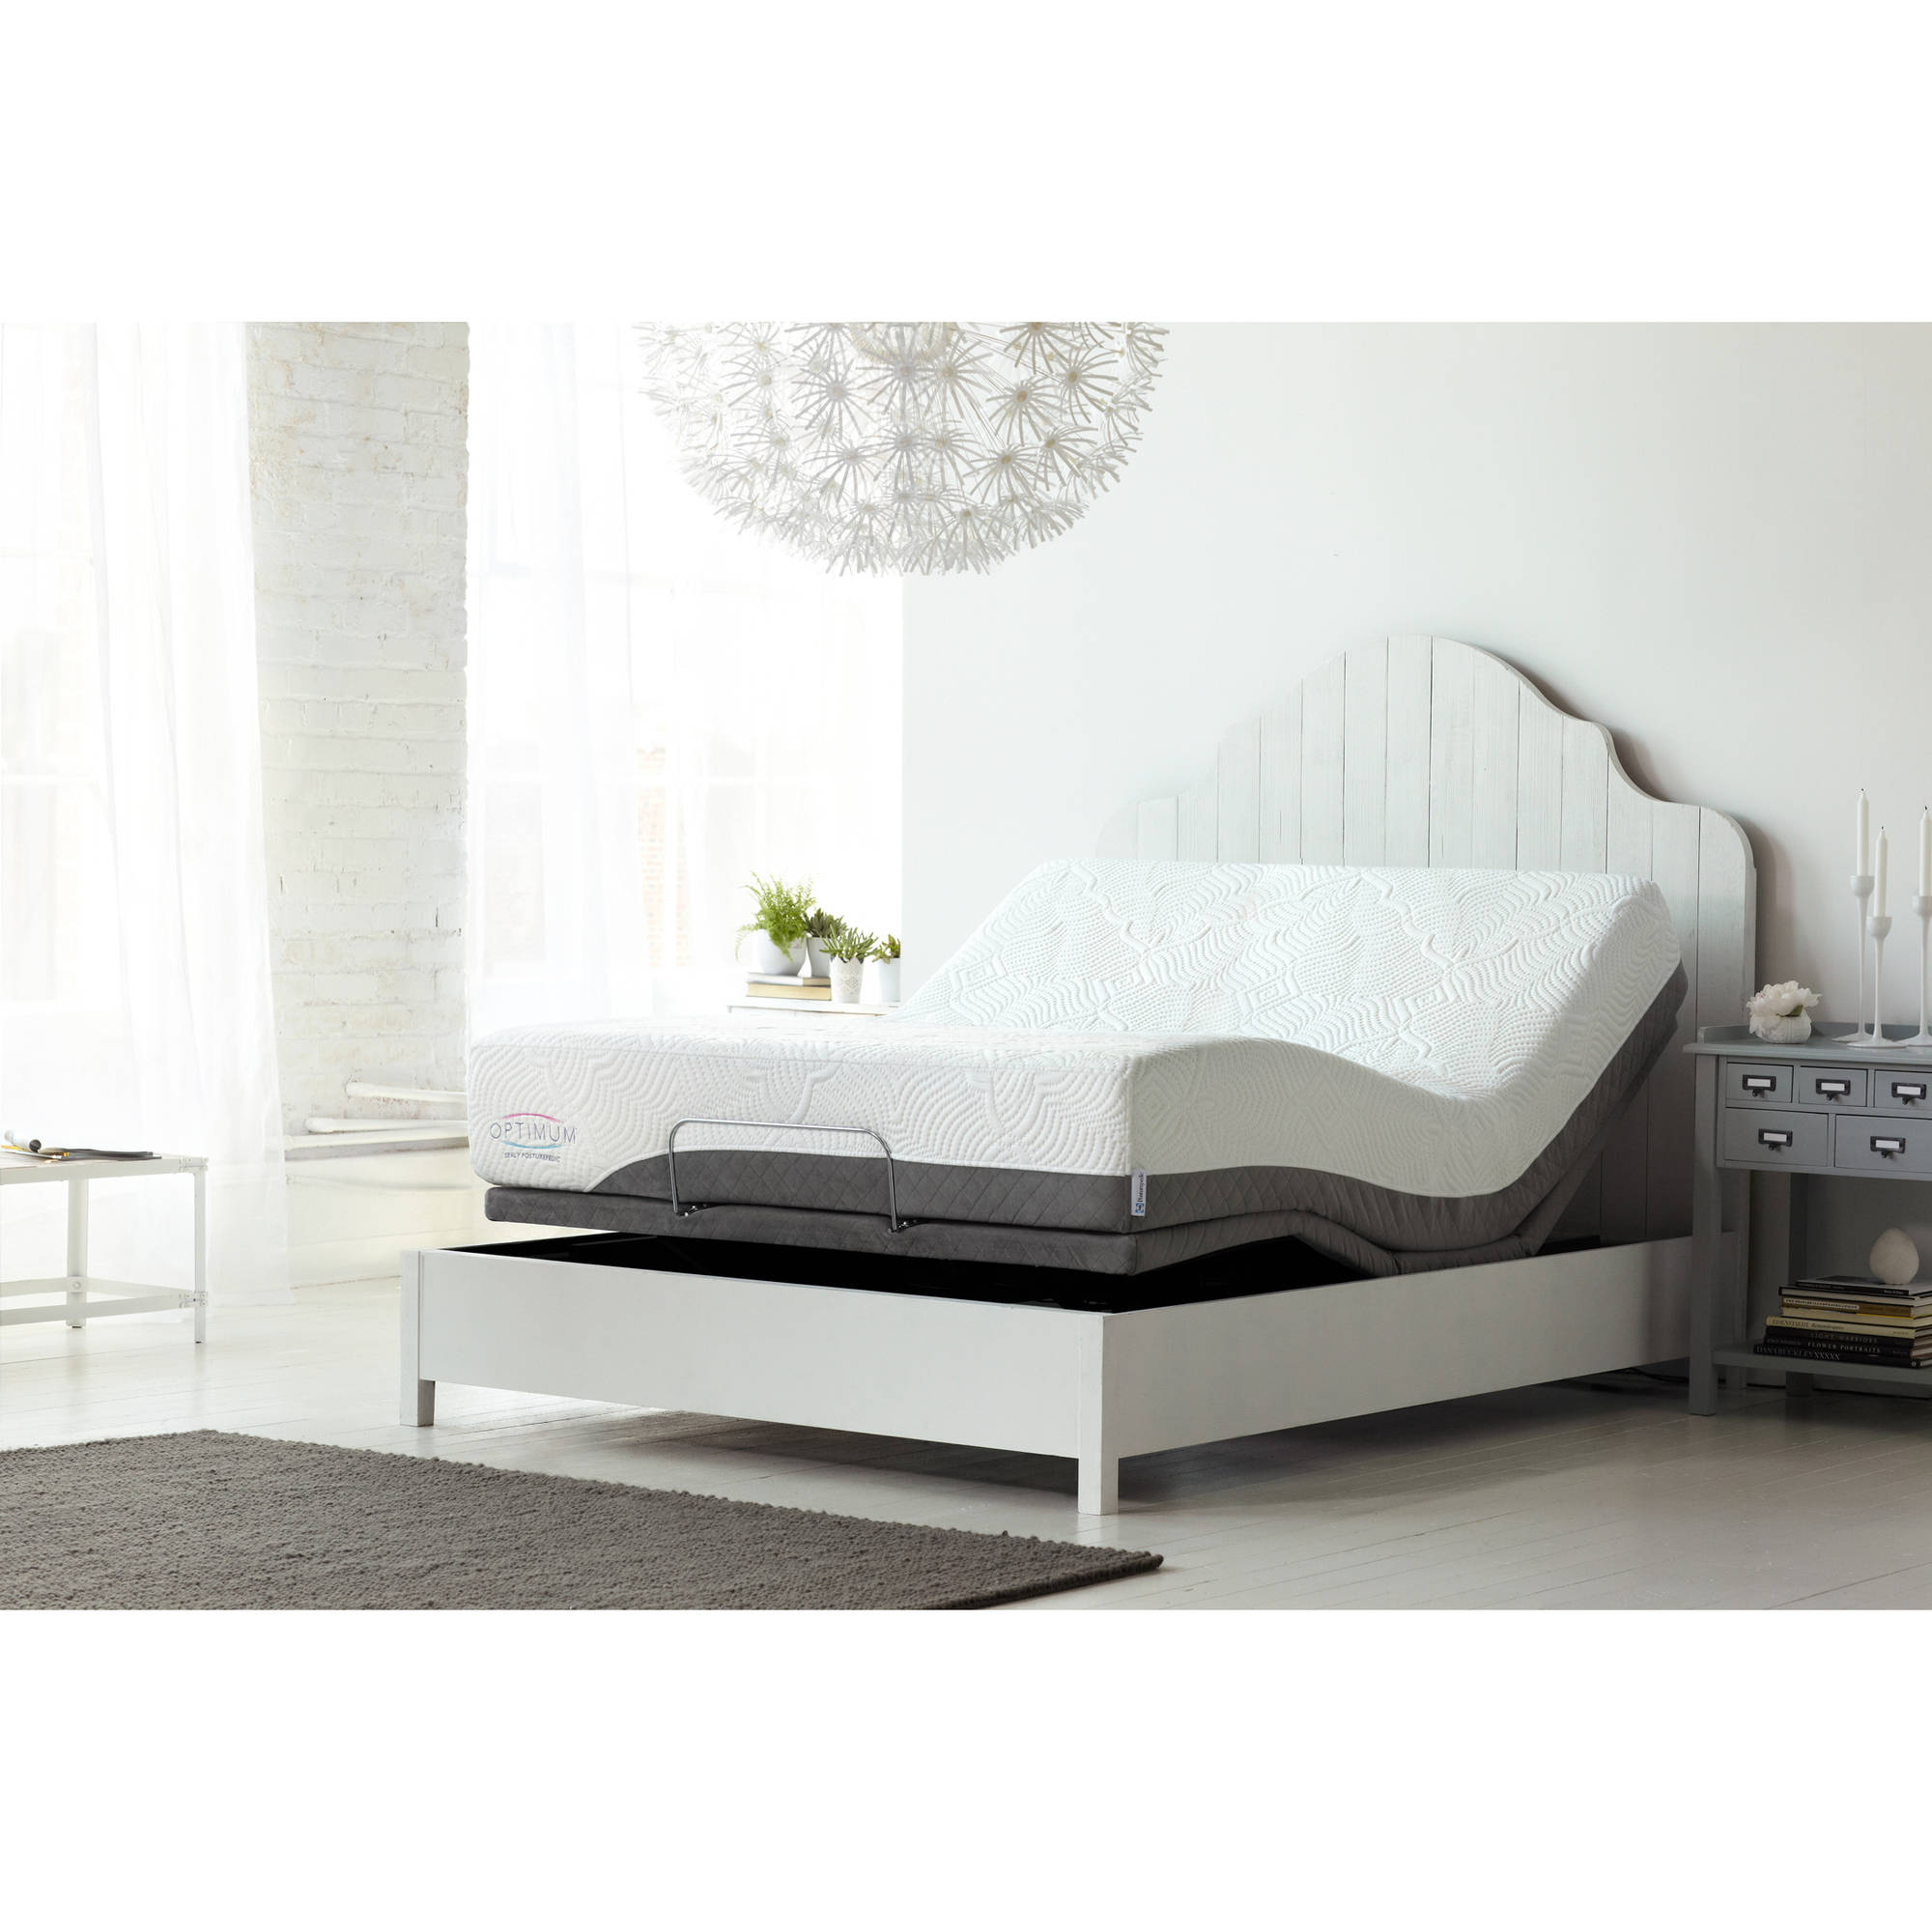 "Optimum Latex By Sealy Posturepedic Dreams Cushion Firm 10"" Mattress, Multiple Sizes by Sealy"